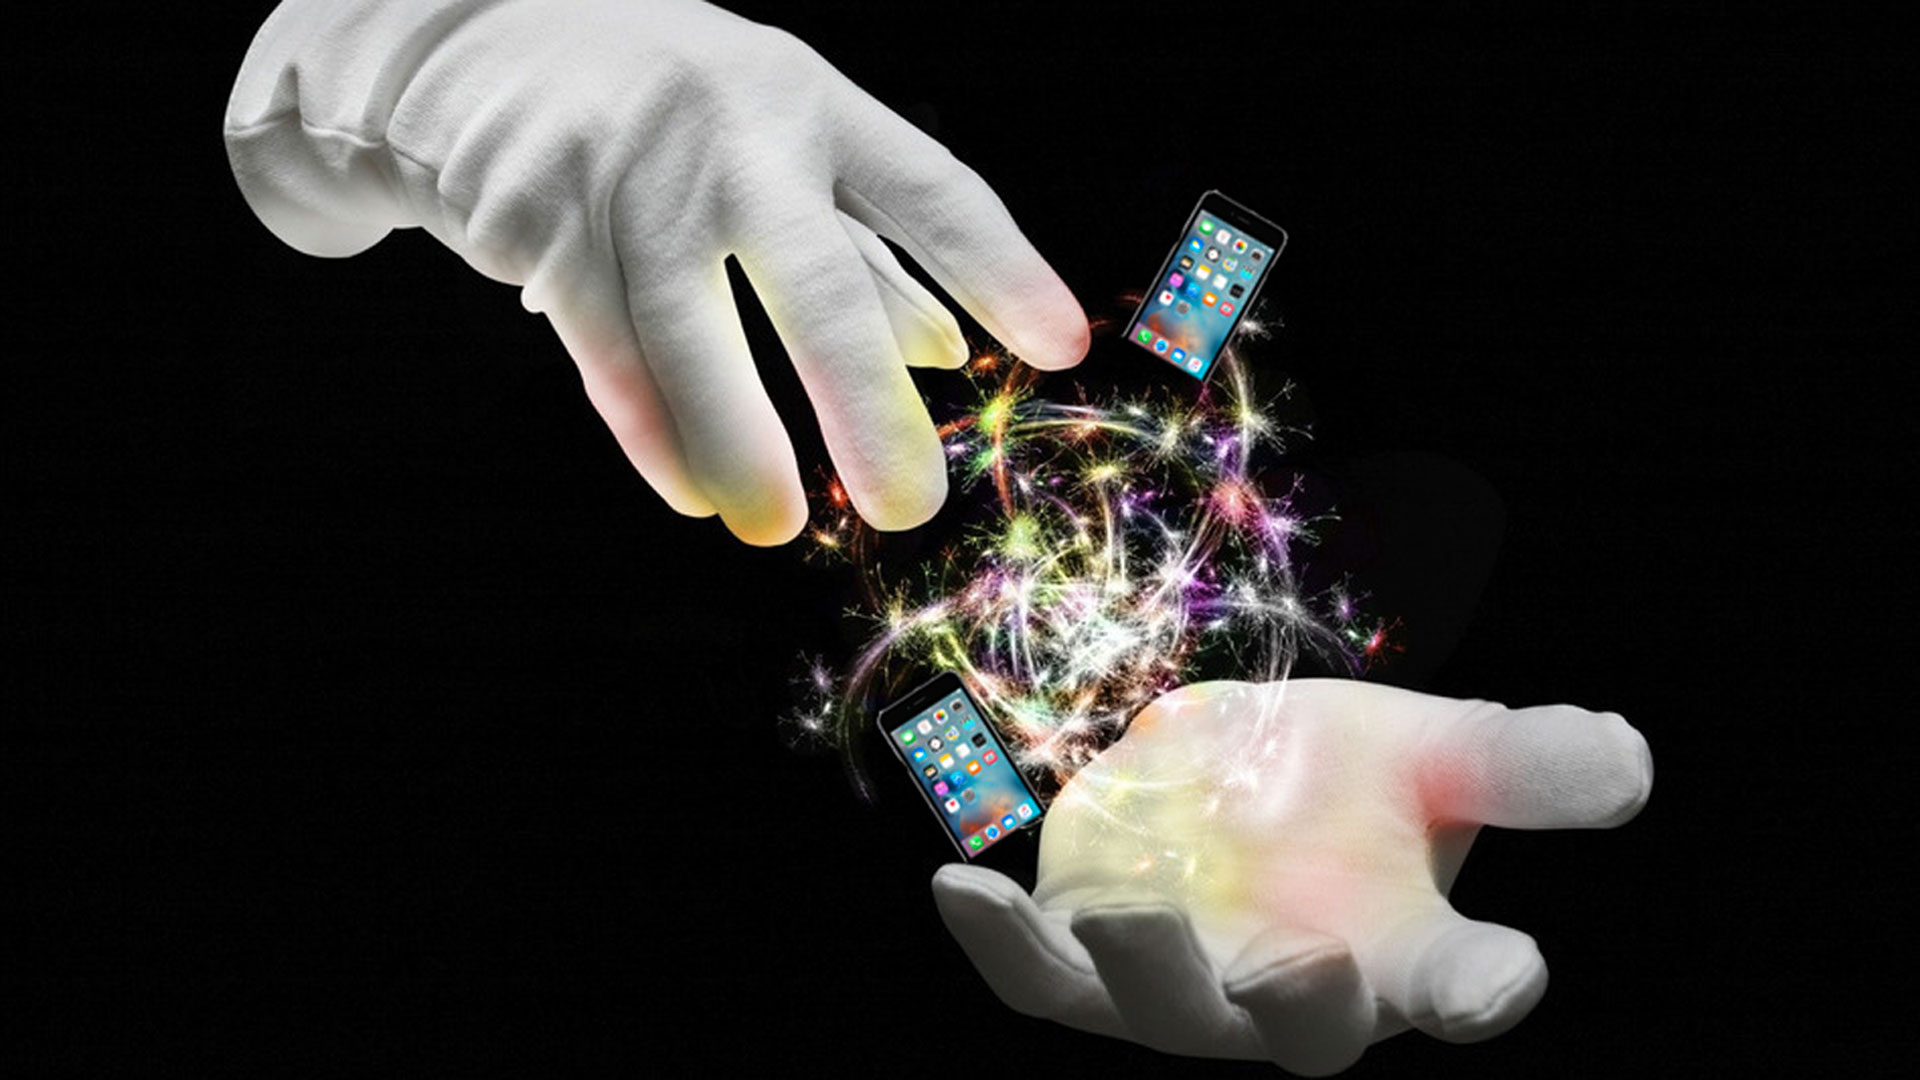 magician's gloved hands conjuring up magic and iphones